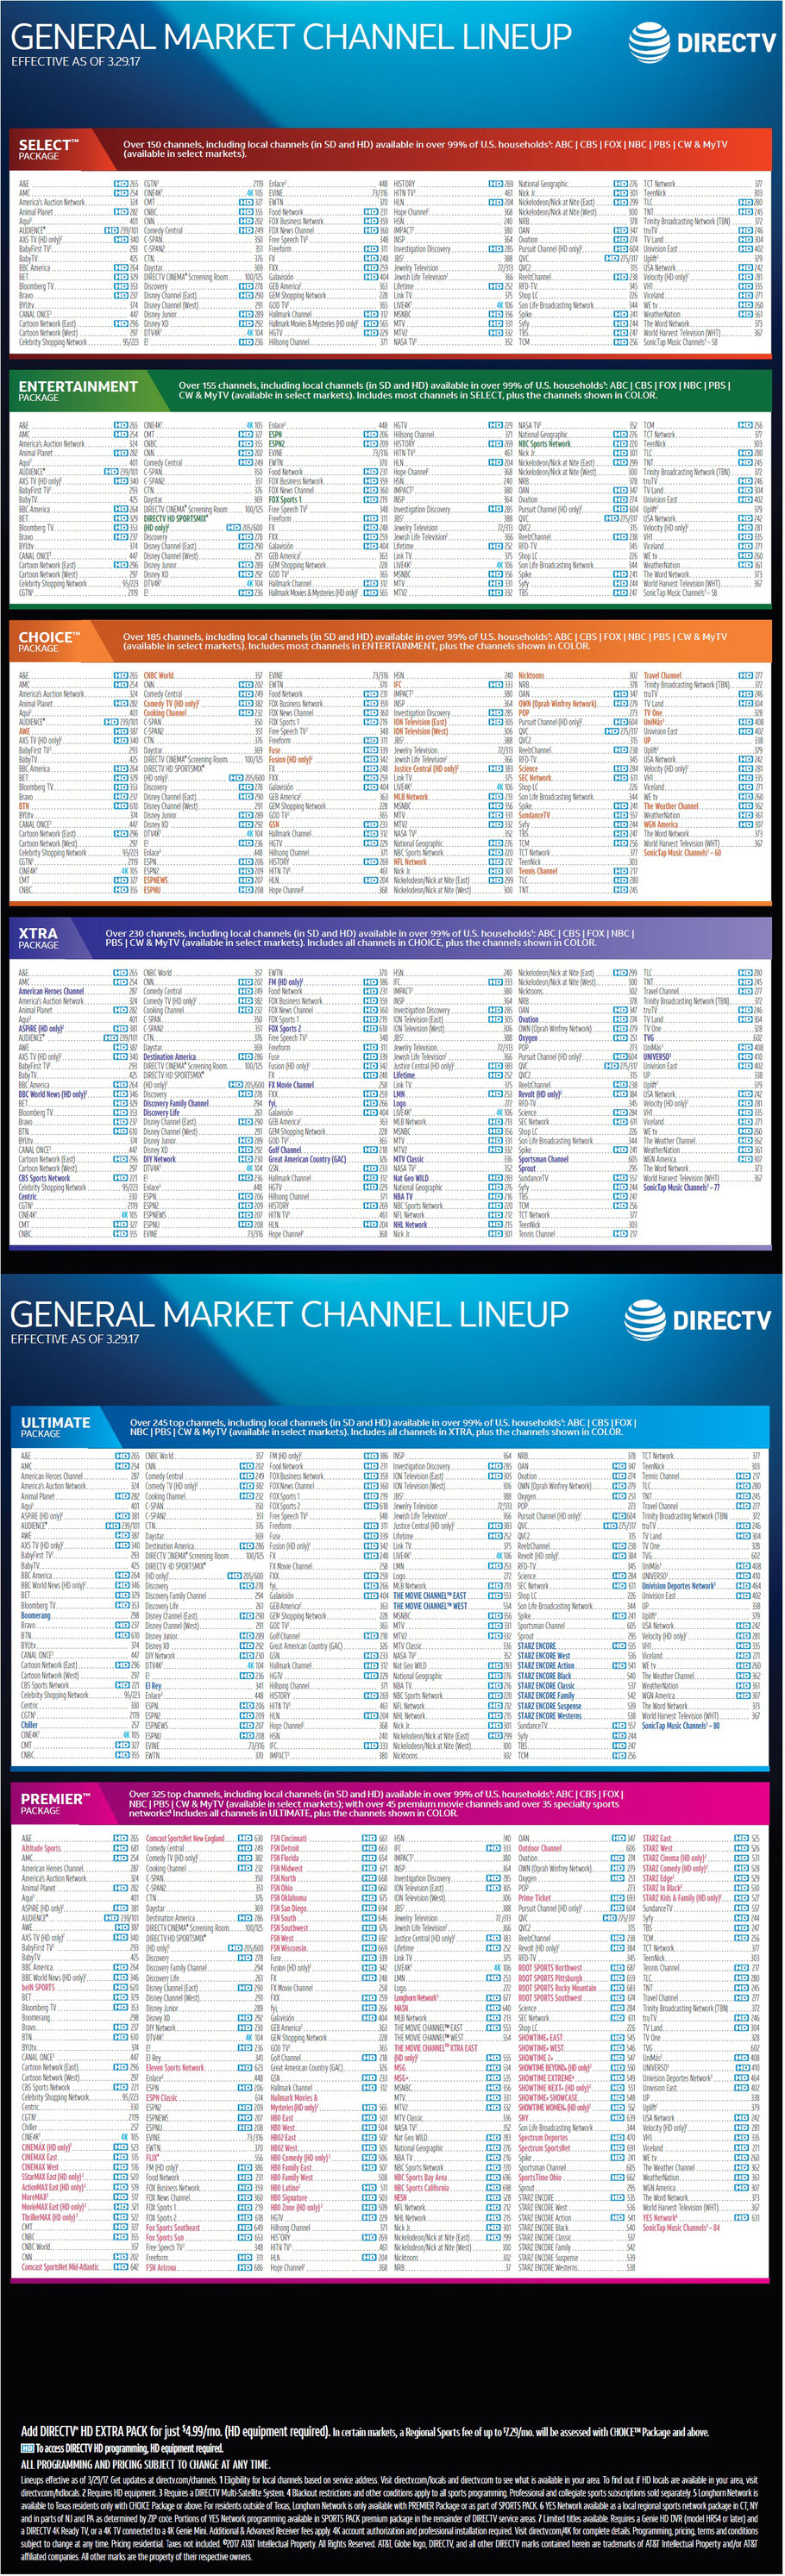 DIRECTV Channel Lineup - Local Cable and Internet Service